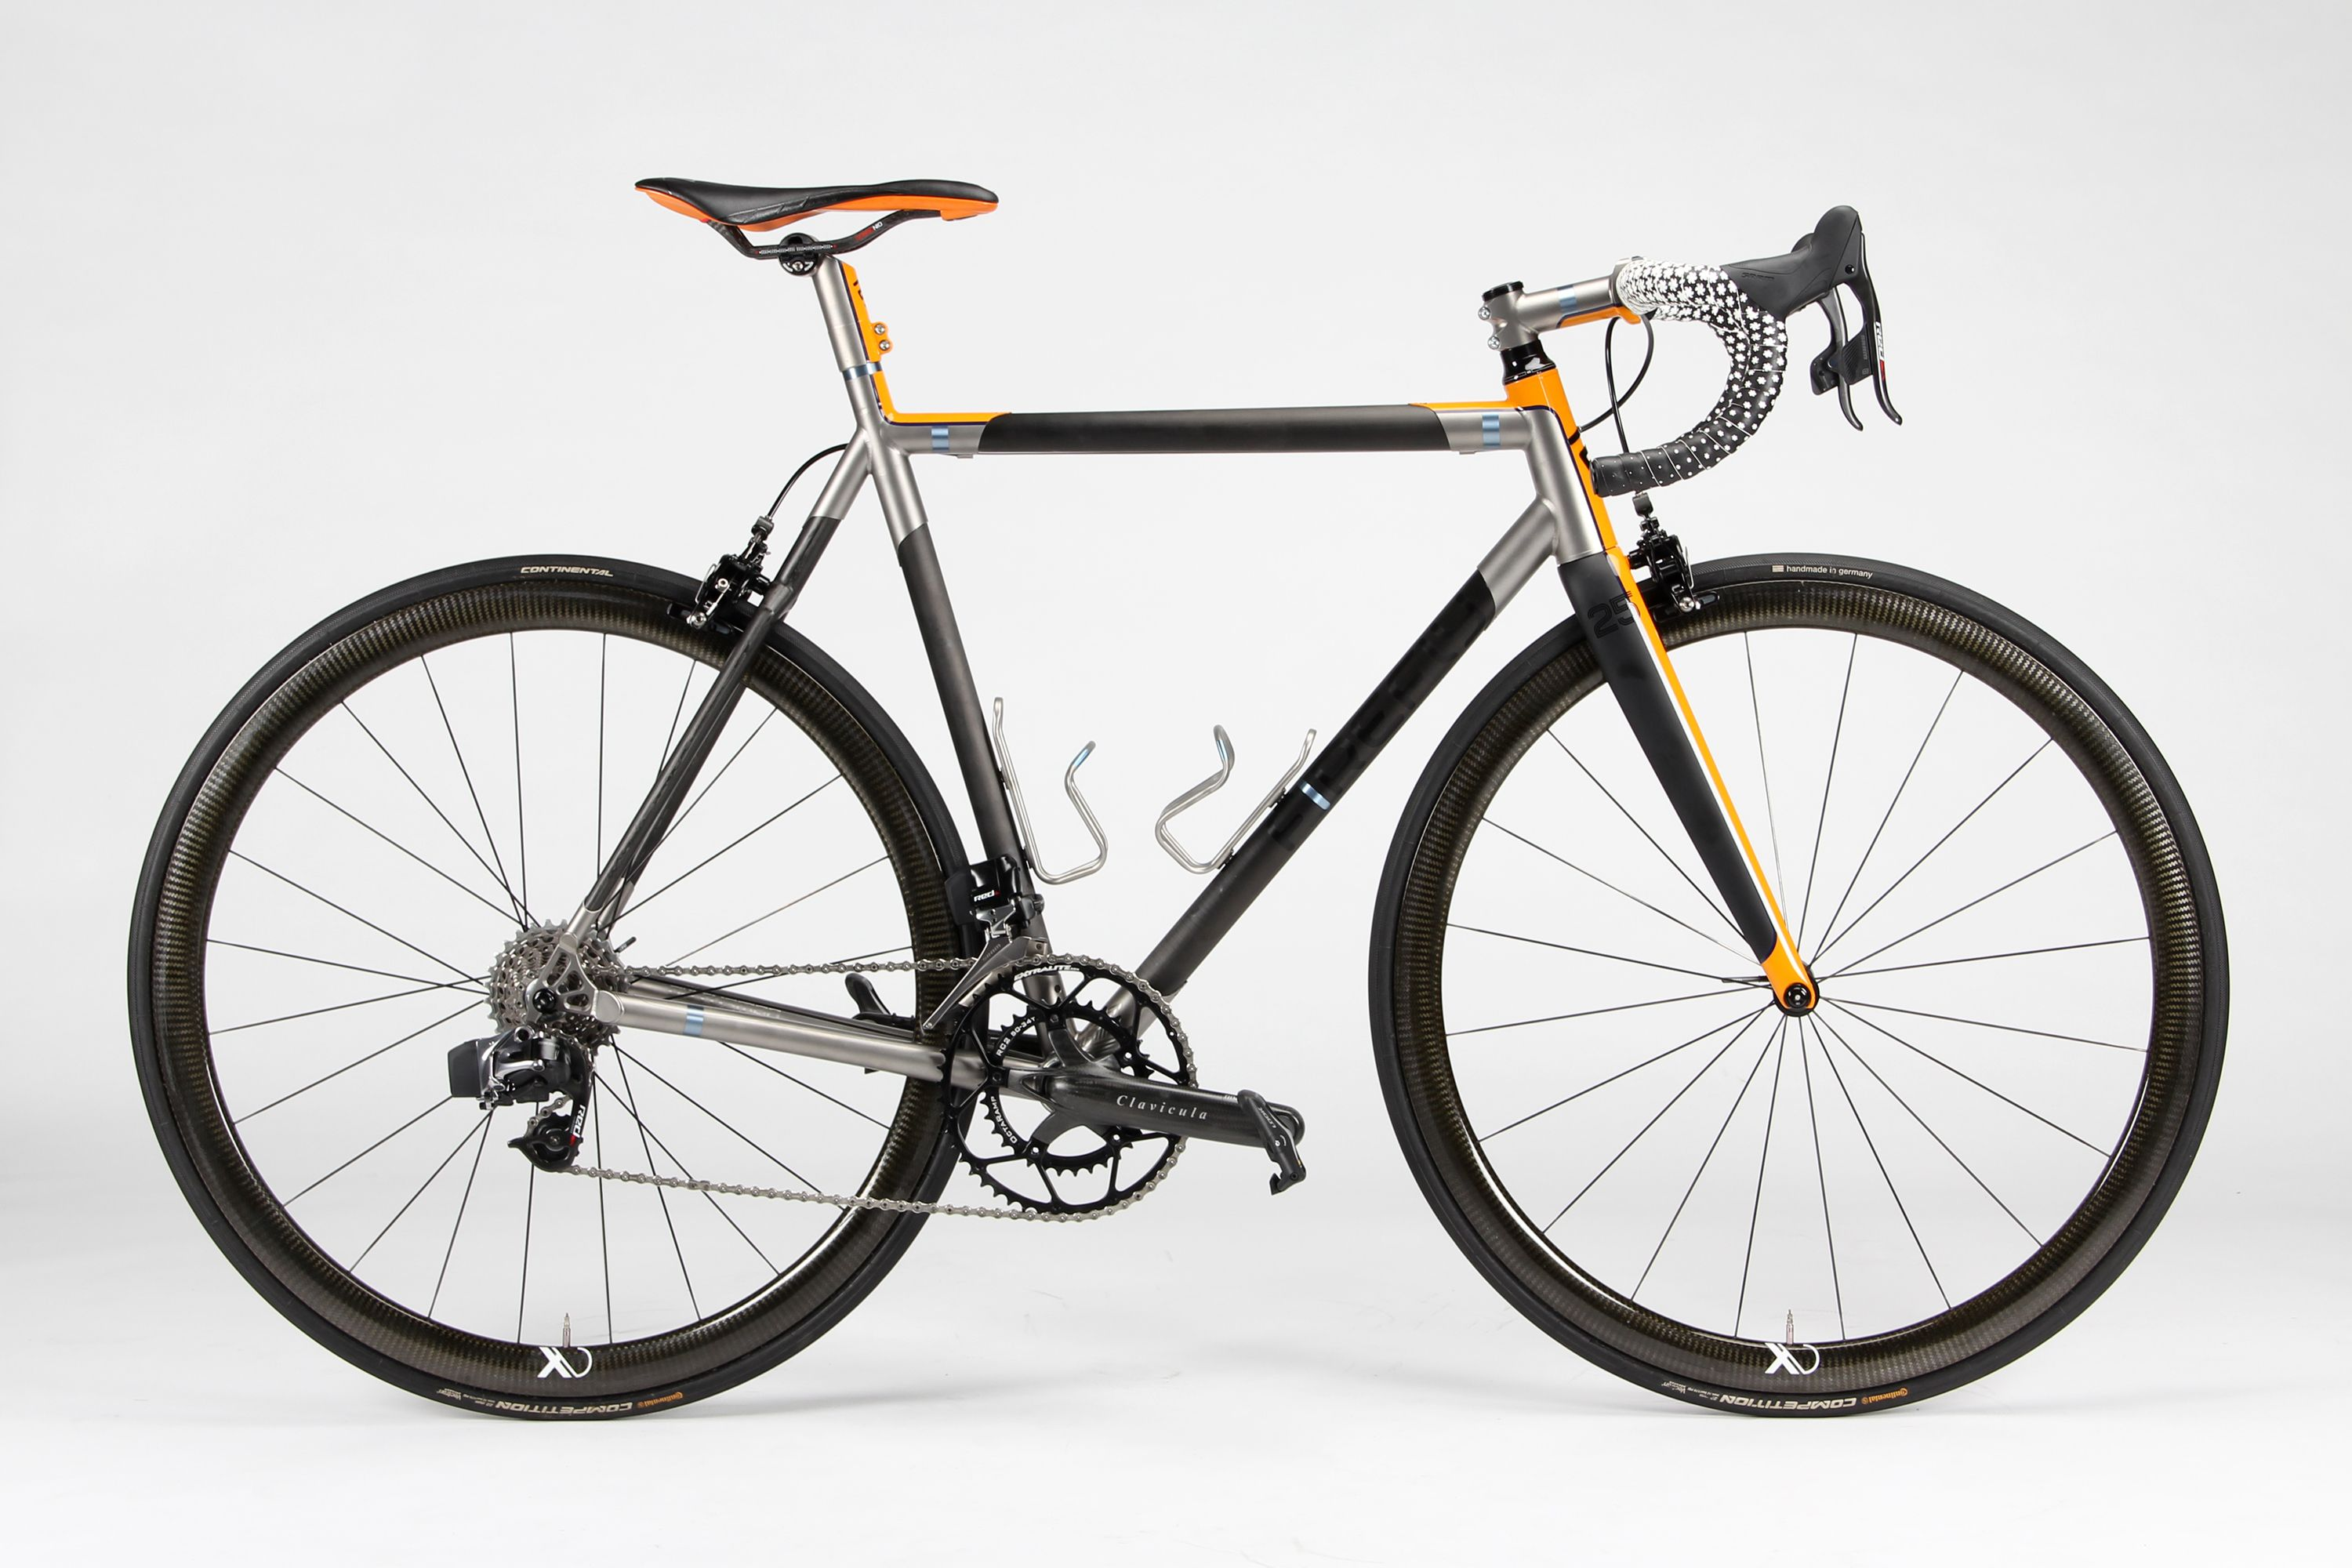 Gallery Firefly Bicycles Bicycle Classic Road Bike Road Bikes